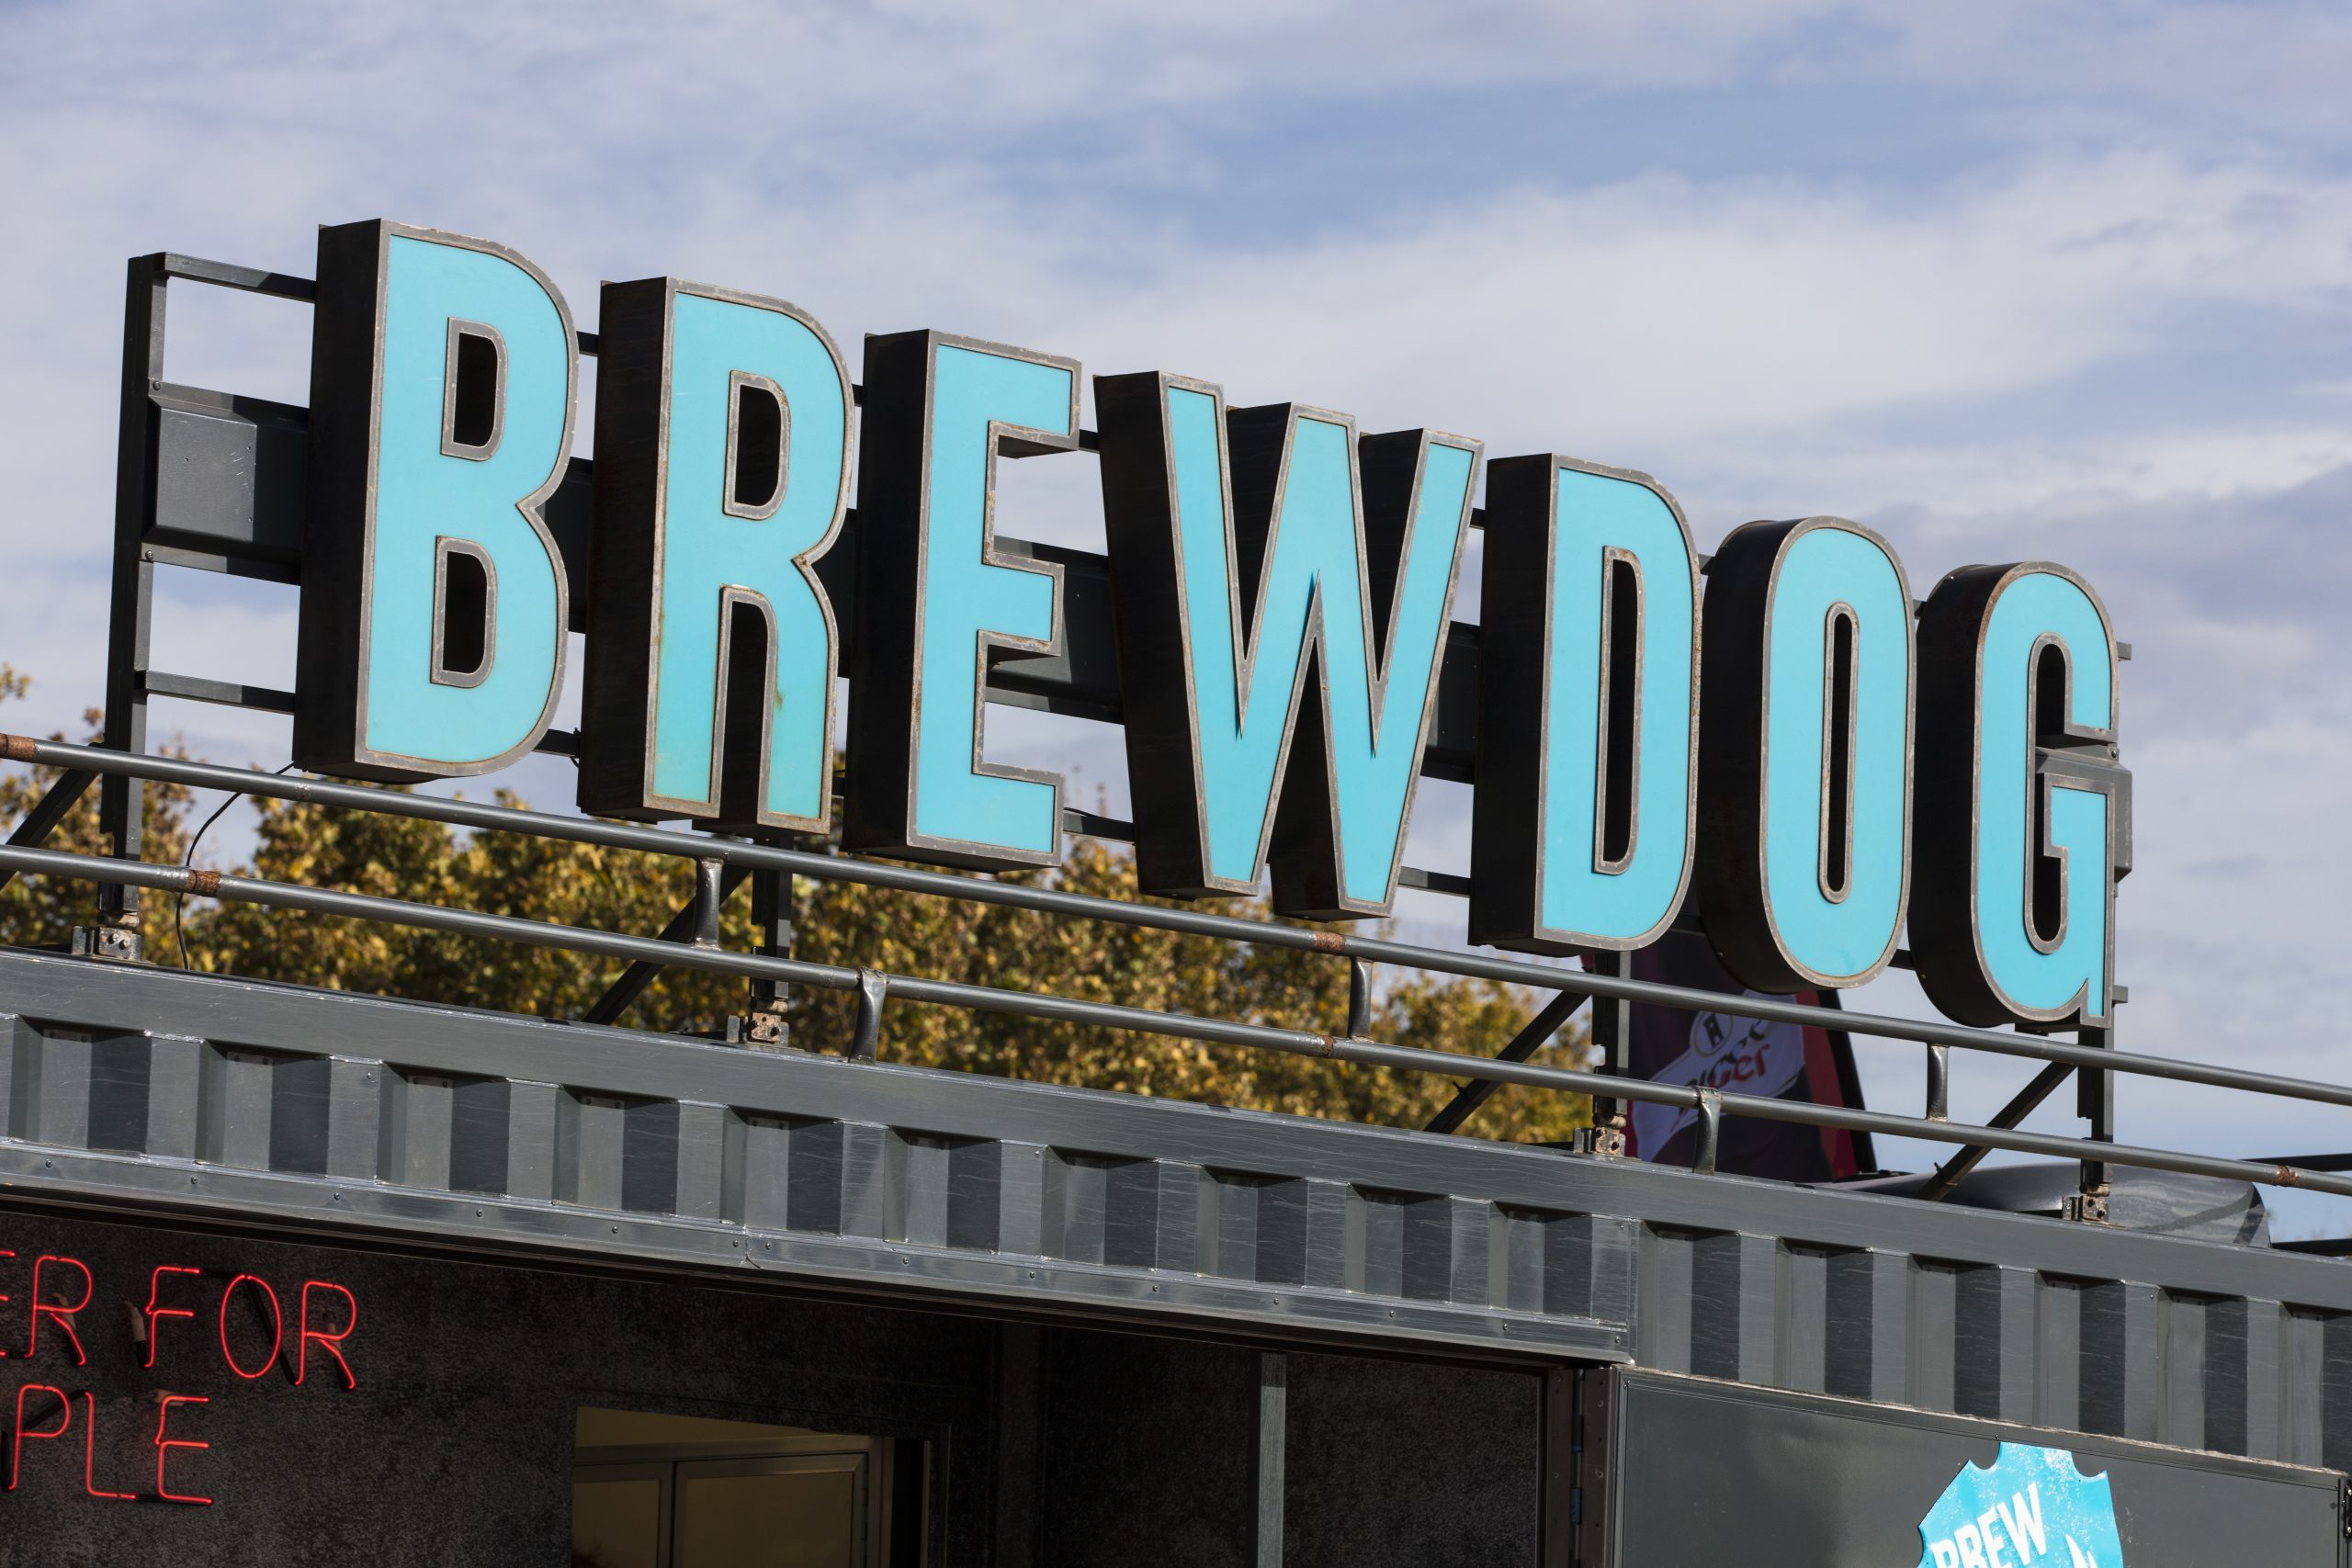 Brewdog S Staggeringly Overvalued Crowdfunding Round Brewers Valued At 1 85bn Or 8 6 Times Revenue Ifa Magazine